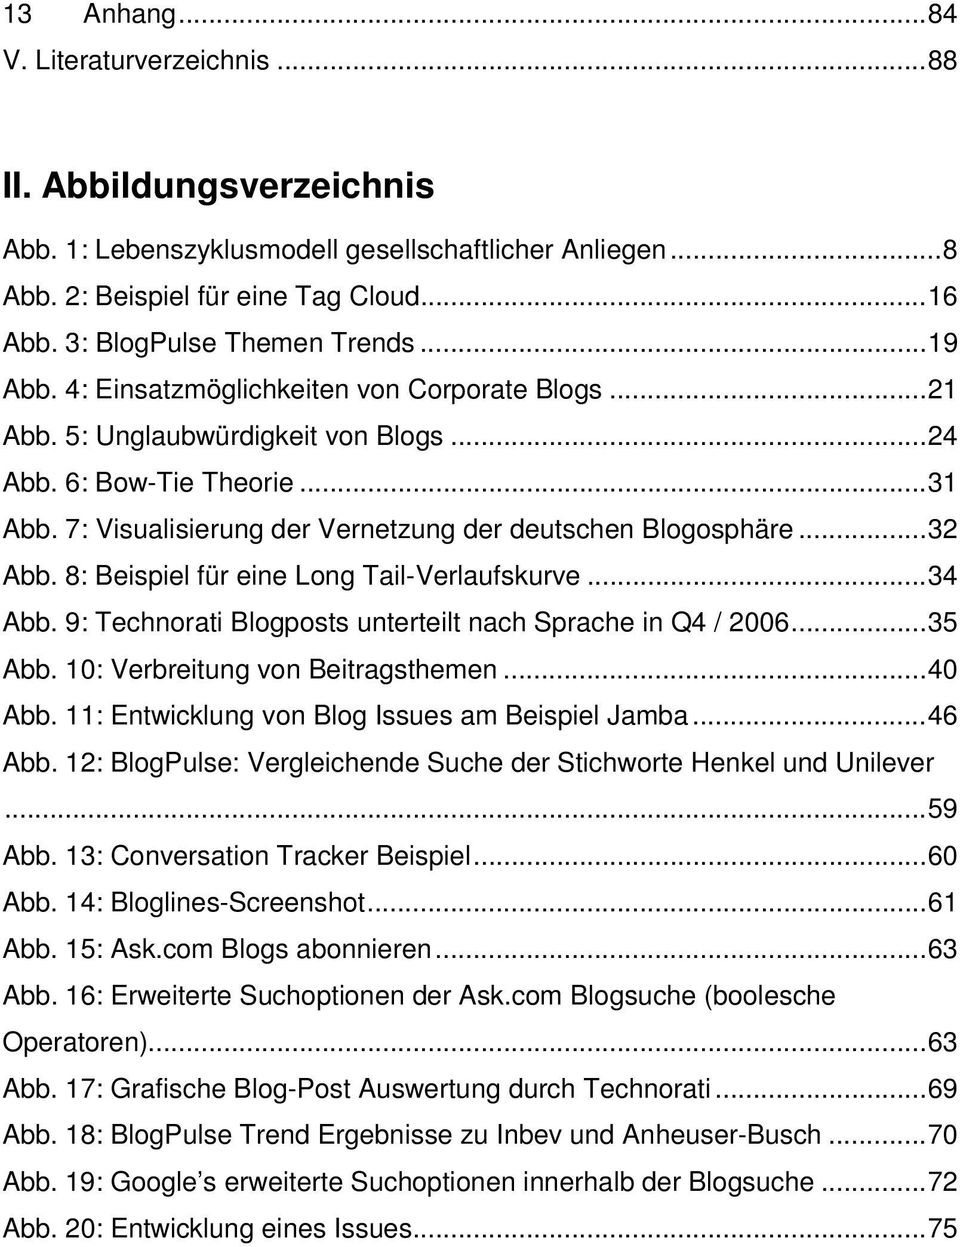 7: Visualisierung der Vernetzung der deutschen Blogosphäre...32 Abb. 8: Beispiel für eine Long Tail-Verlaufskurve...34 Abb. 9: Technorati Blogposts unterteilt nach Sprache in Q4 / 2006...35 Abb.